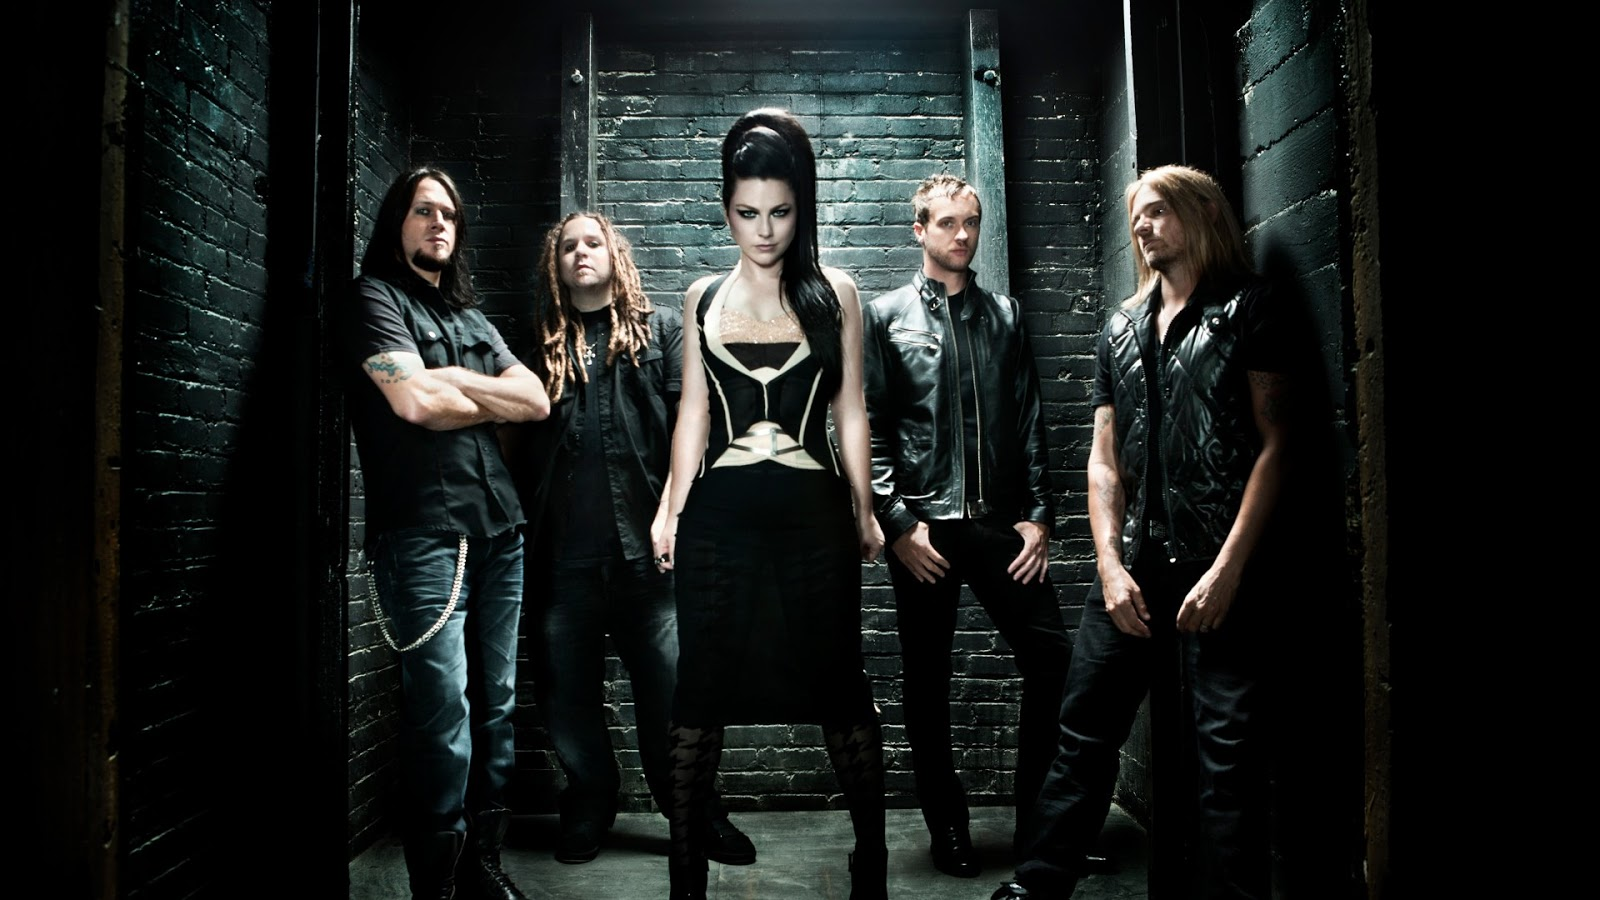 http://2.bp.blogspot.com/-VSgYKksWrB8/Tm960nqQbxI/AAAAAAAAARs/Rze40hFK_HA/s1600/Evanescence+2011+Wallpapers%252C+Album+Evanescence+Wallpaper.jpg